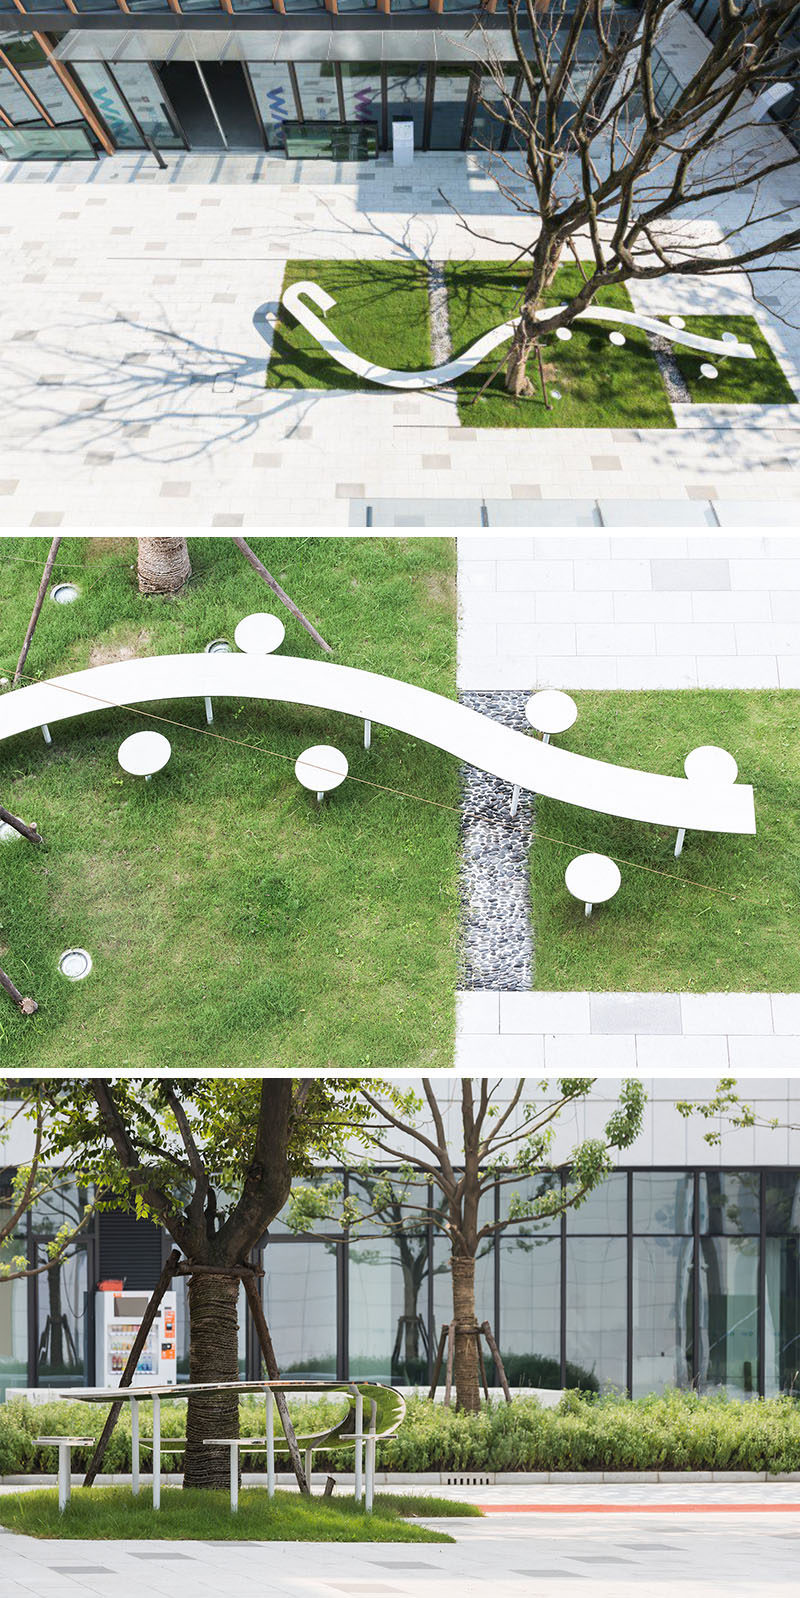 Award Winning Street Furniture And Landscape Designs From The A' Design Award & Competition